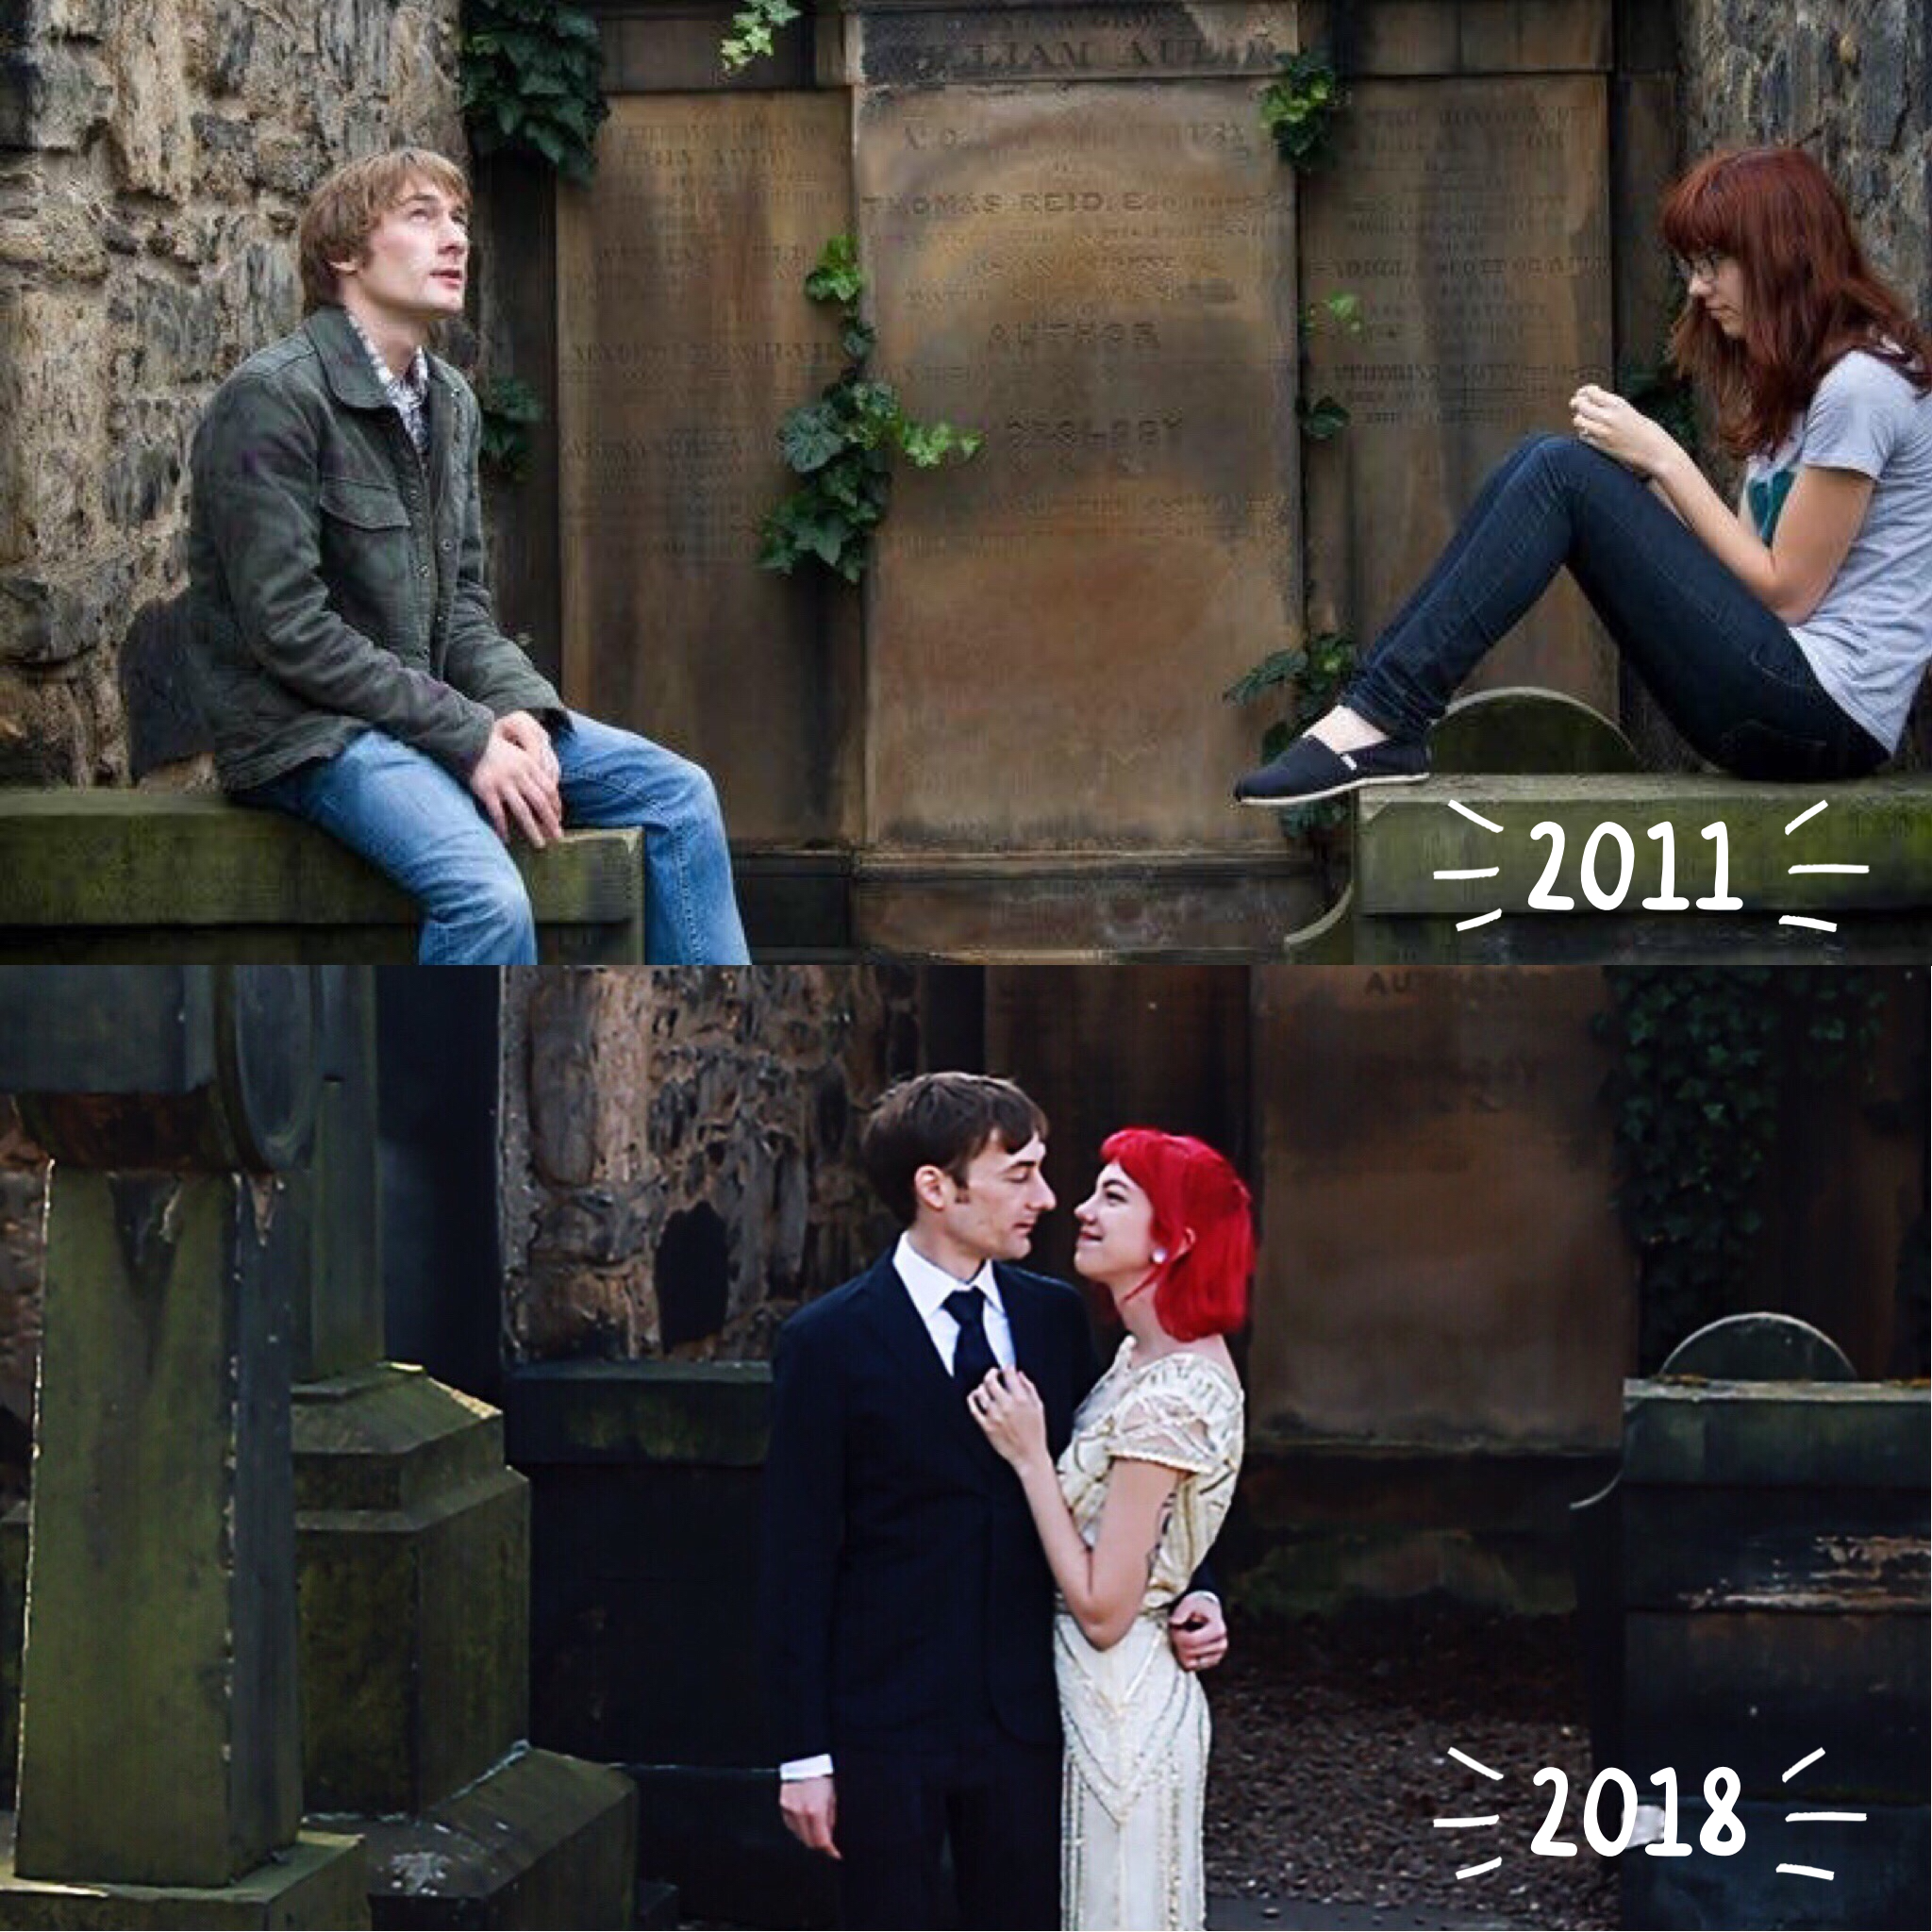 Alex and I took my favorite wedding photo in the same spot where we took one of our very first photos together